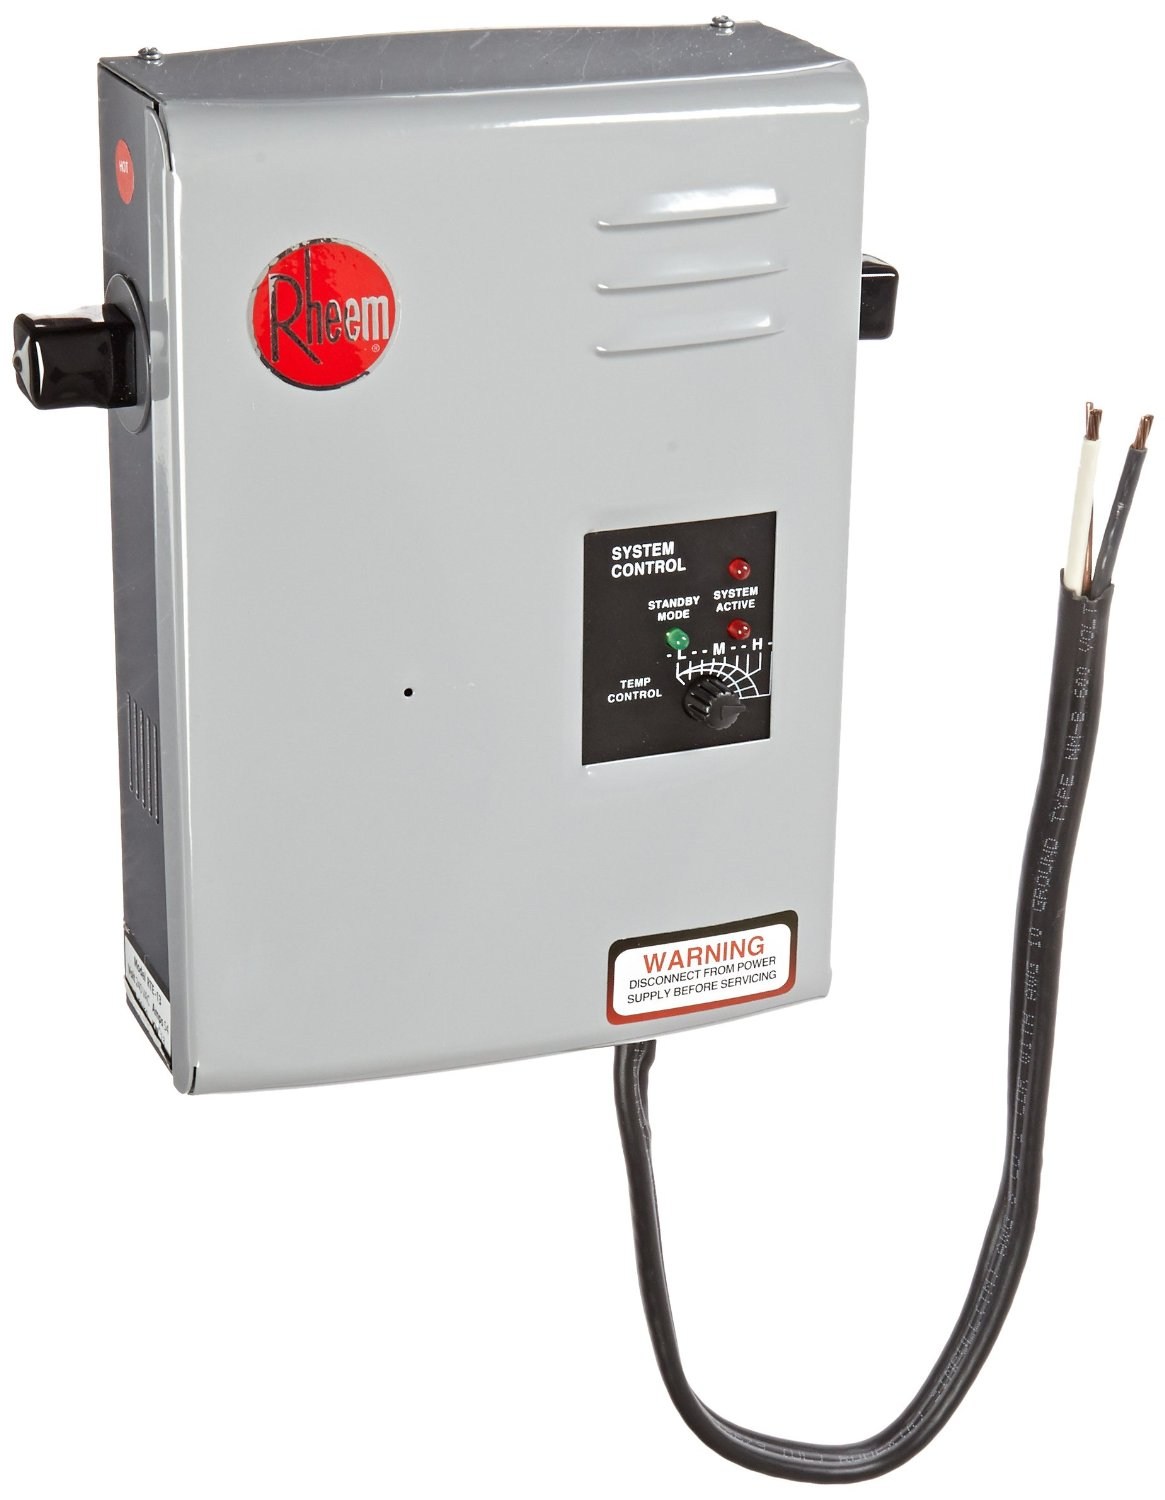 Rheem RTE 13 Electric Tankless Water Heater rheem rte 13 electric tankless water heater reviews wiring diagram for rheem tankless water heater at nearapp.co